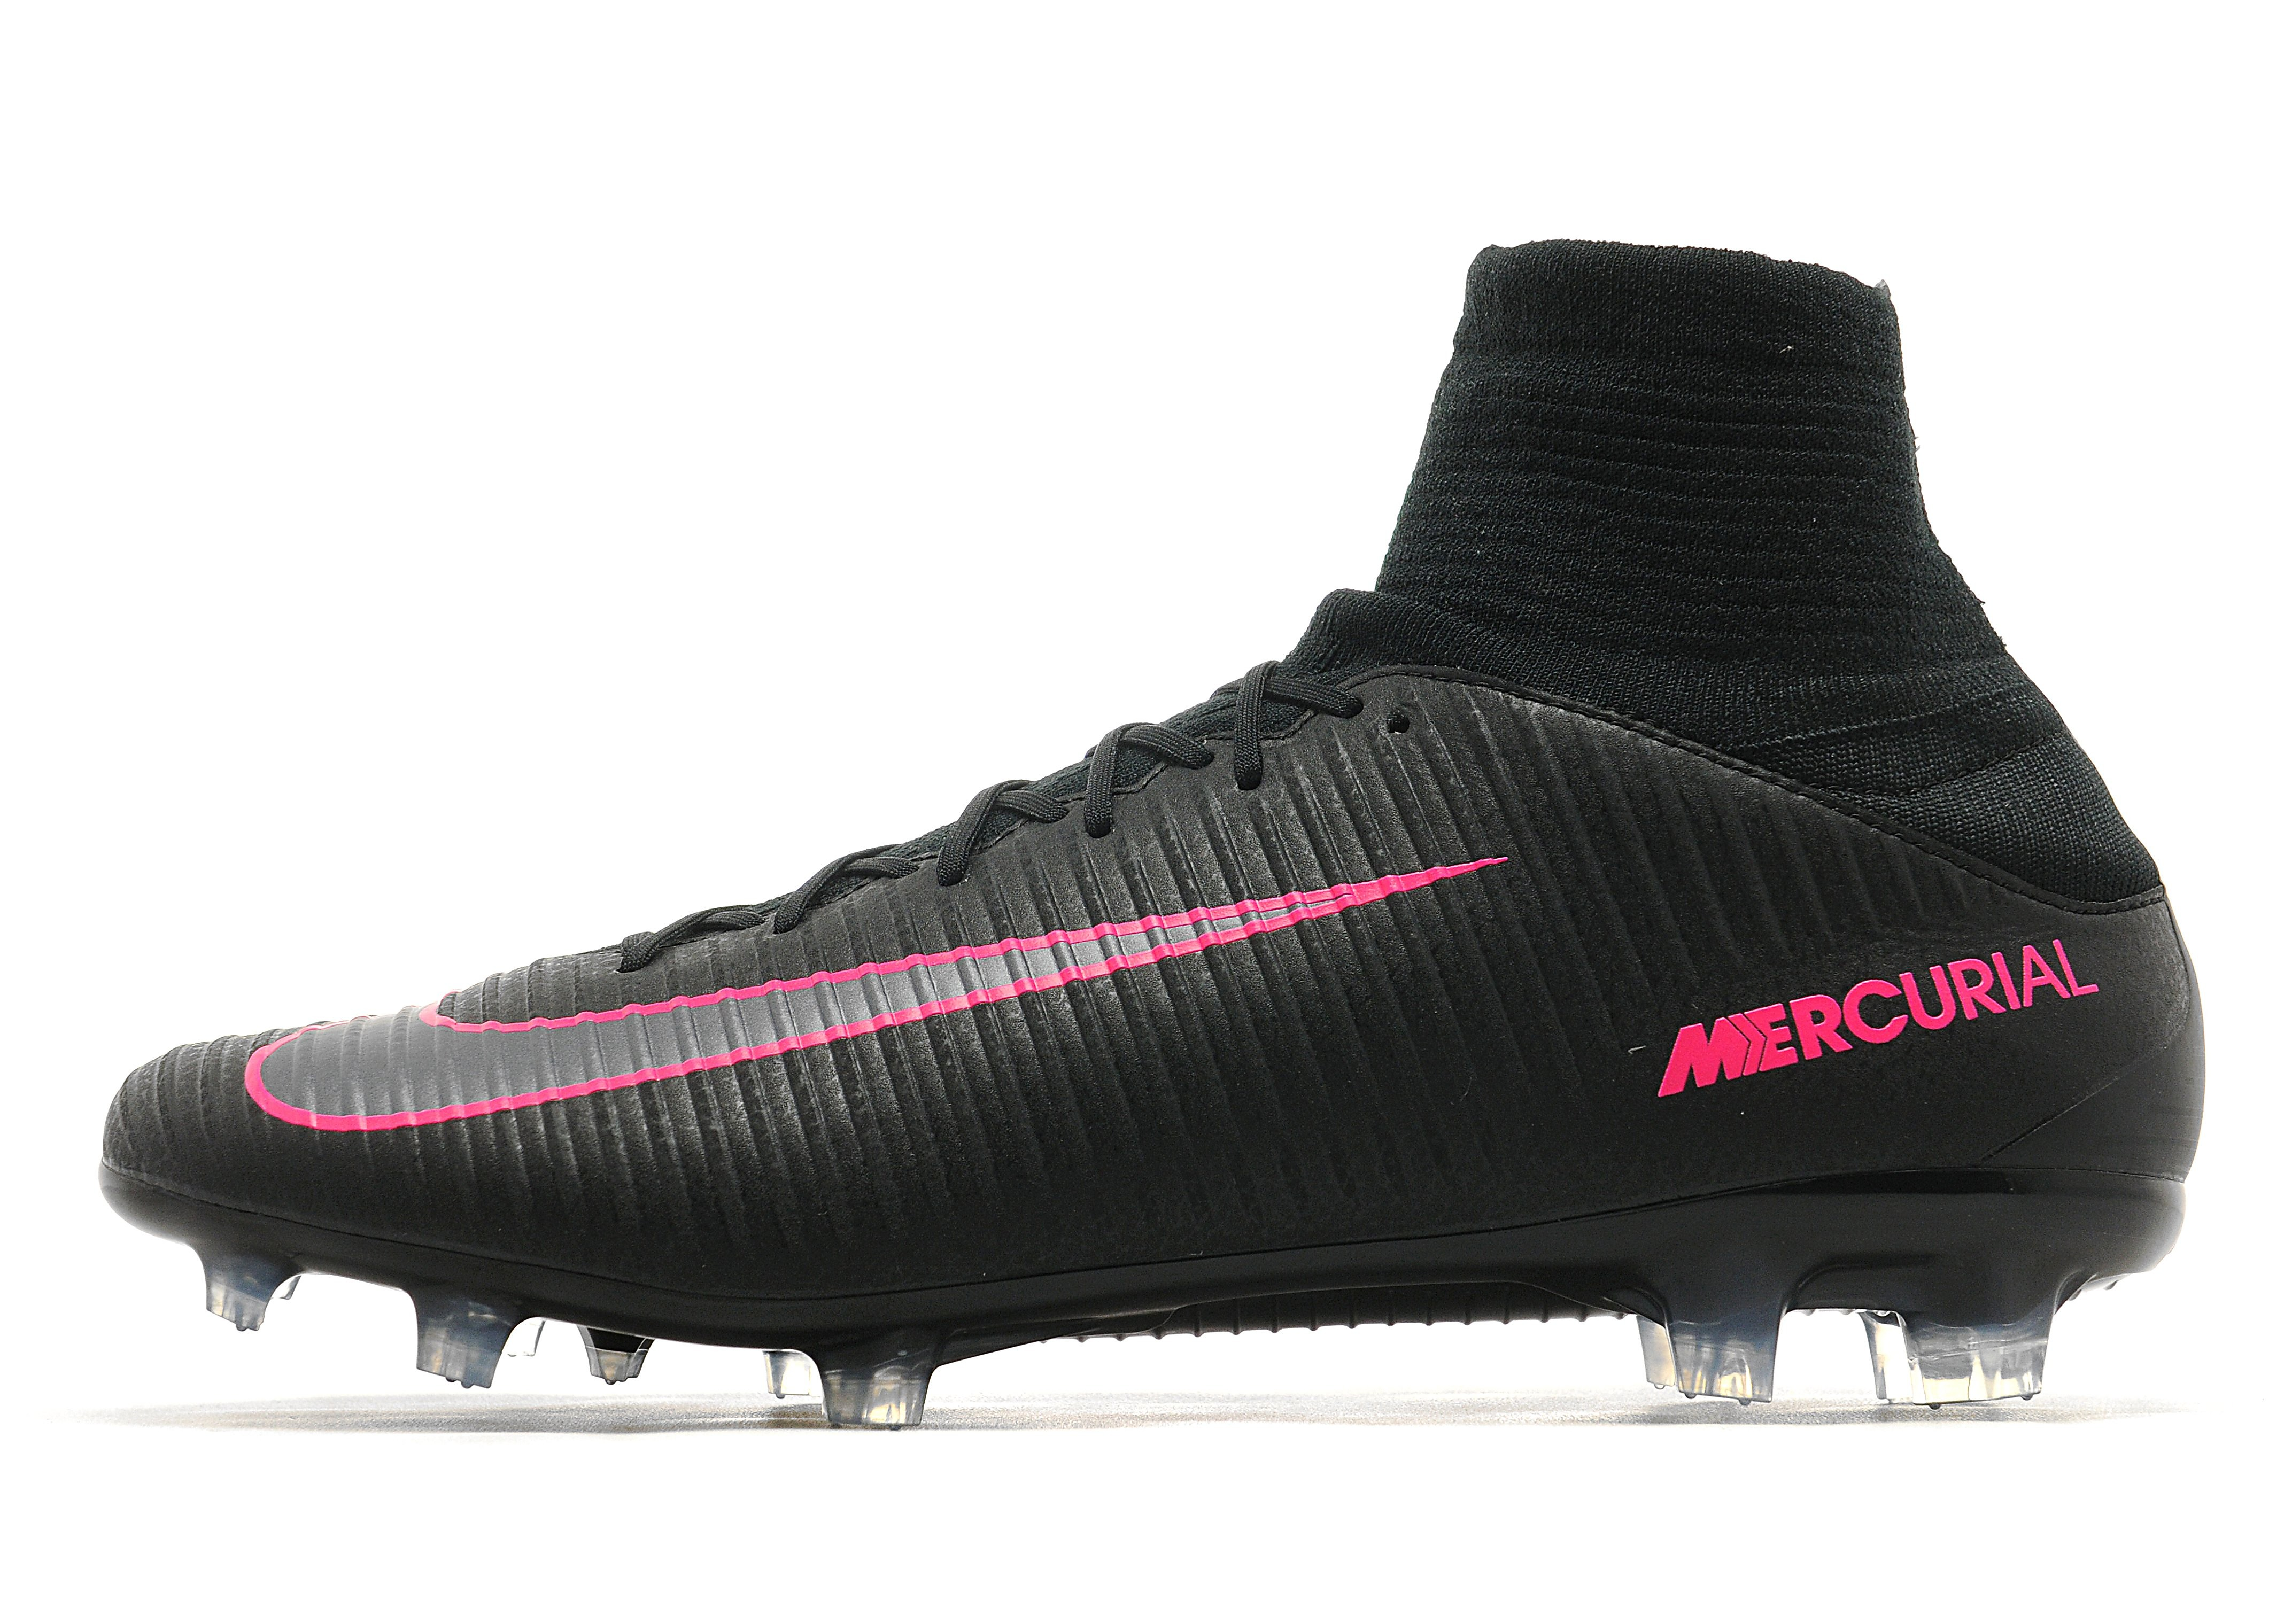 Nike Pitch Dark Mercurial Veloce III DF FG